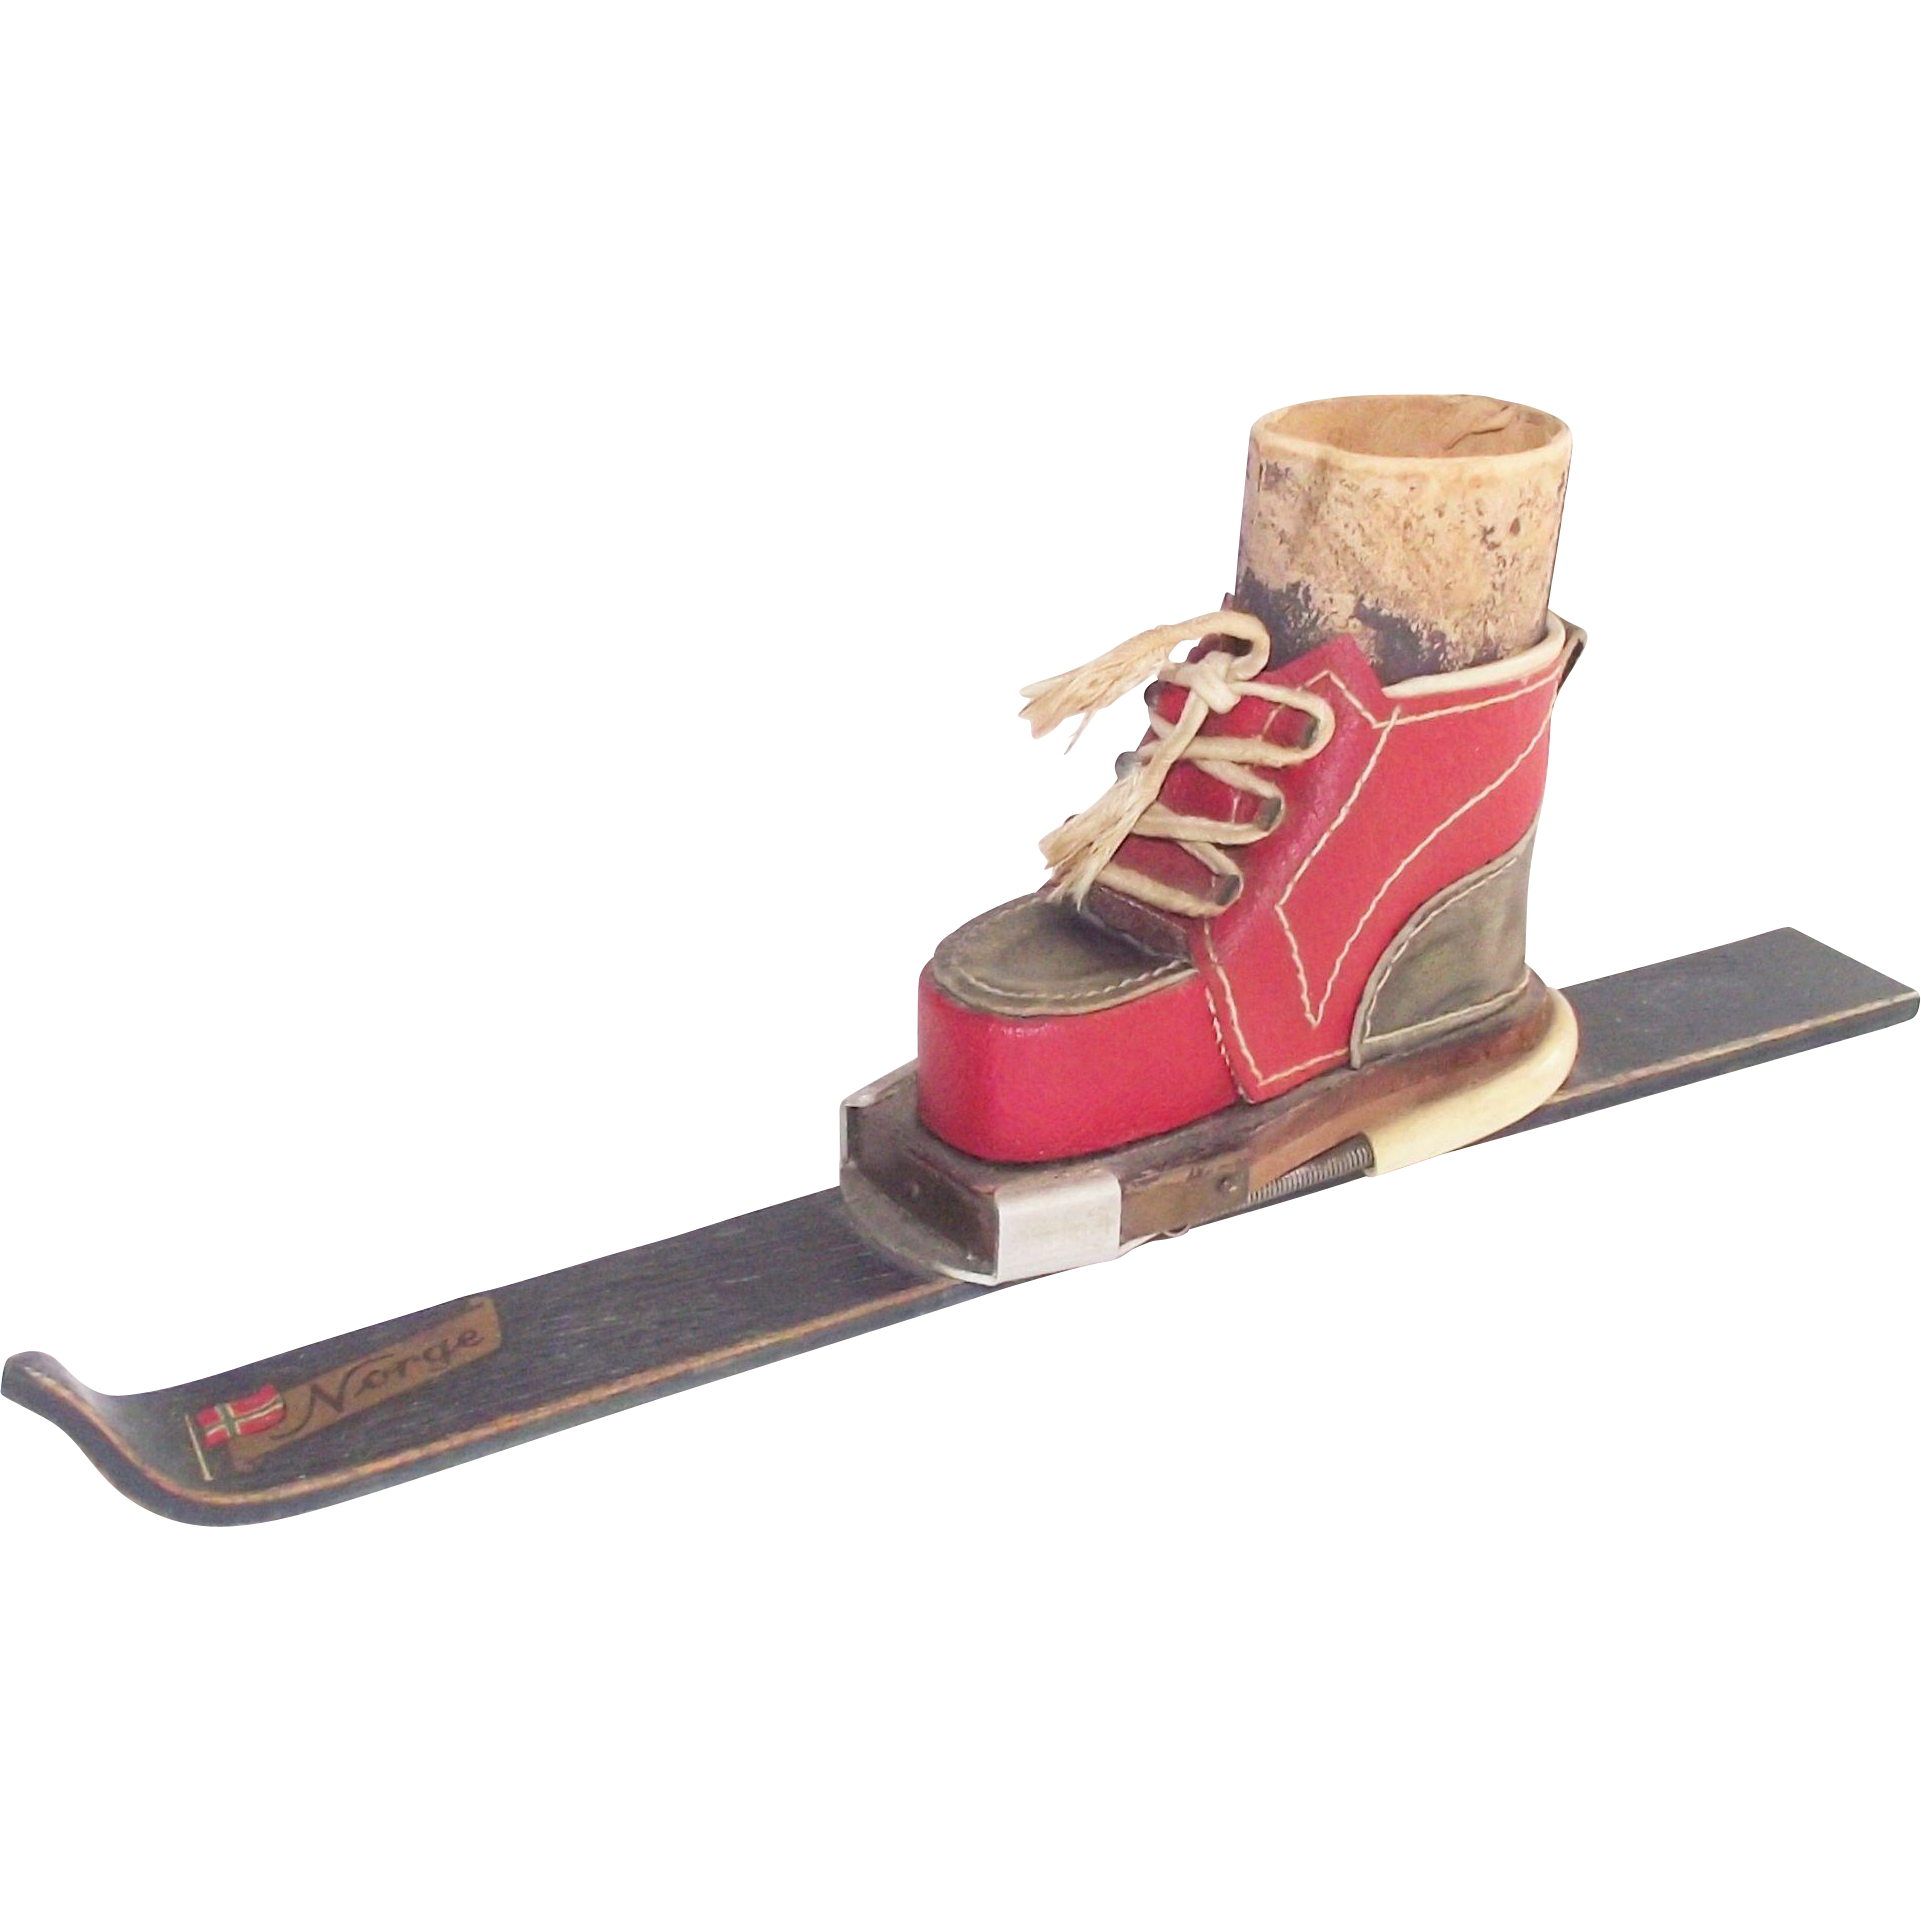 Vintage Norwegian Wooden Ski with Leather Ski Boot Match Holder